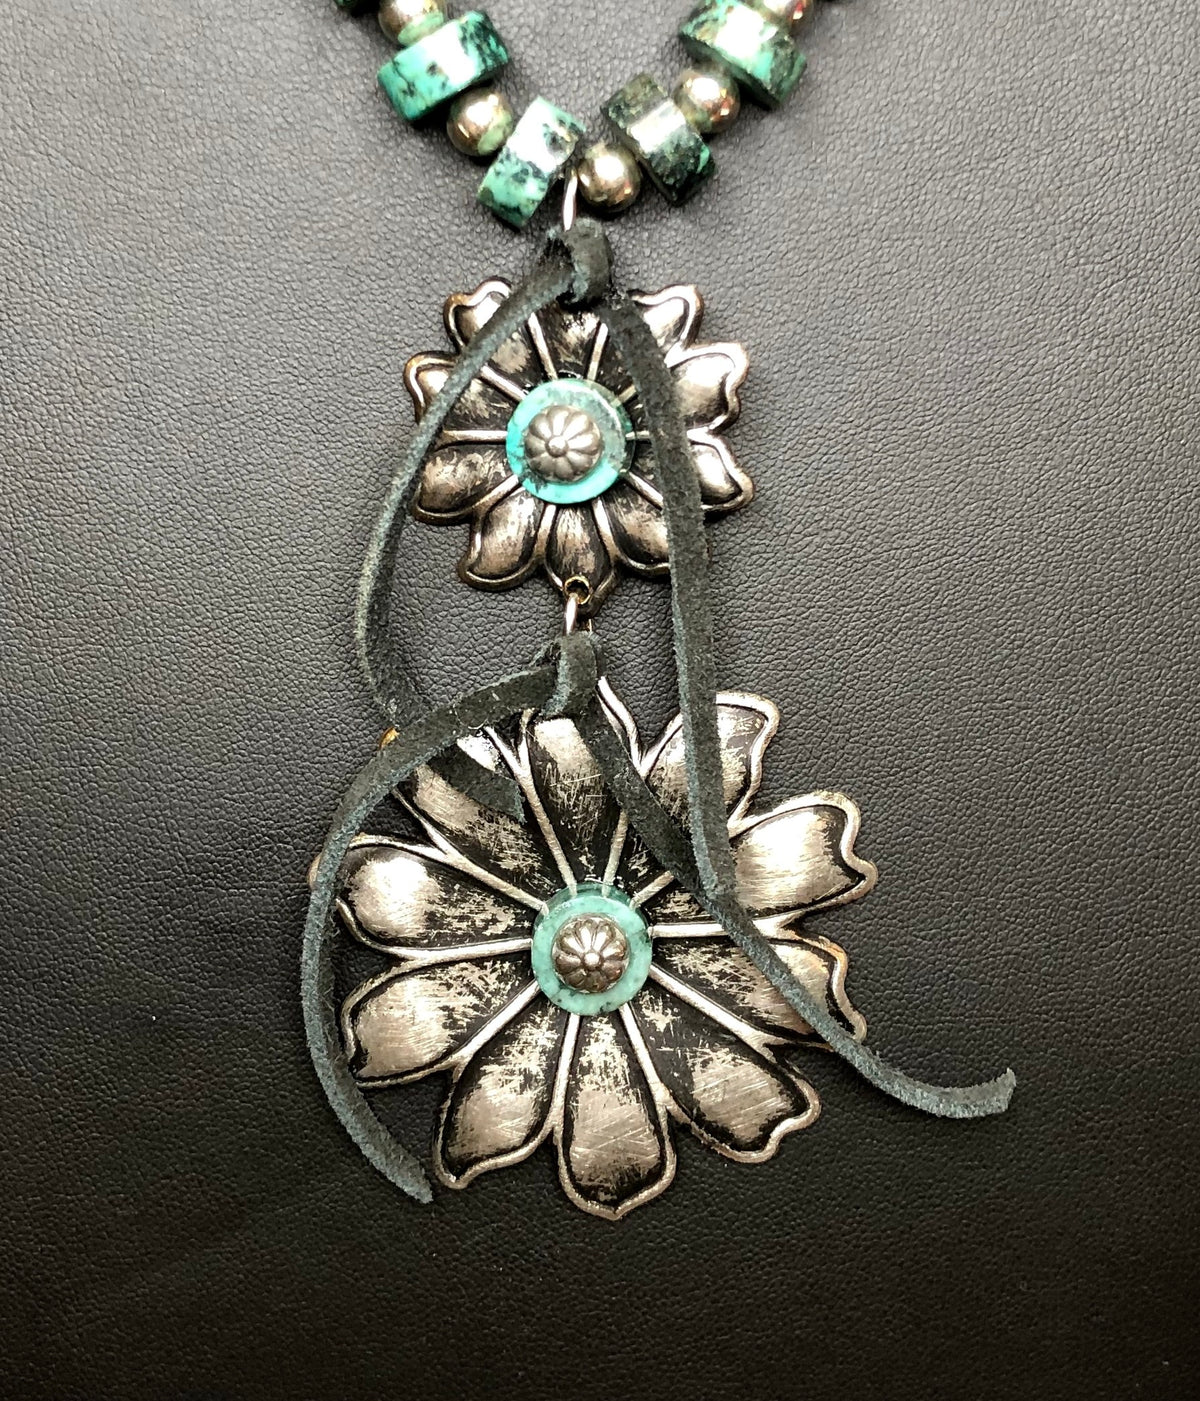 The African Turquoise & Sterling Silver Plate Silver Bead Long Necklace with Double Flower Pendant